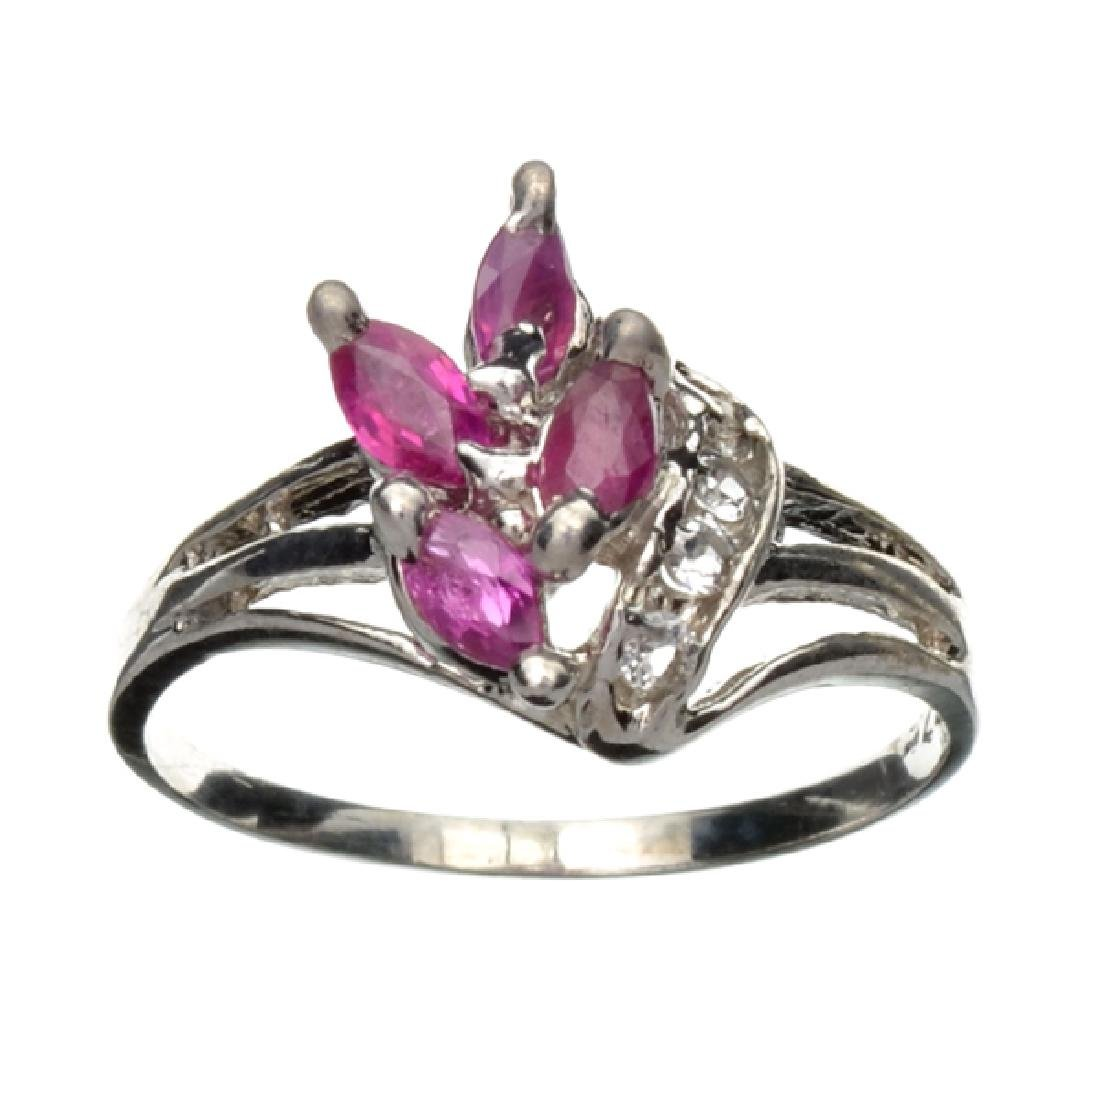 APP: 0.8k 0.31CT Ruby And Topaz Platinum Over Sterling